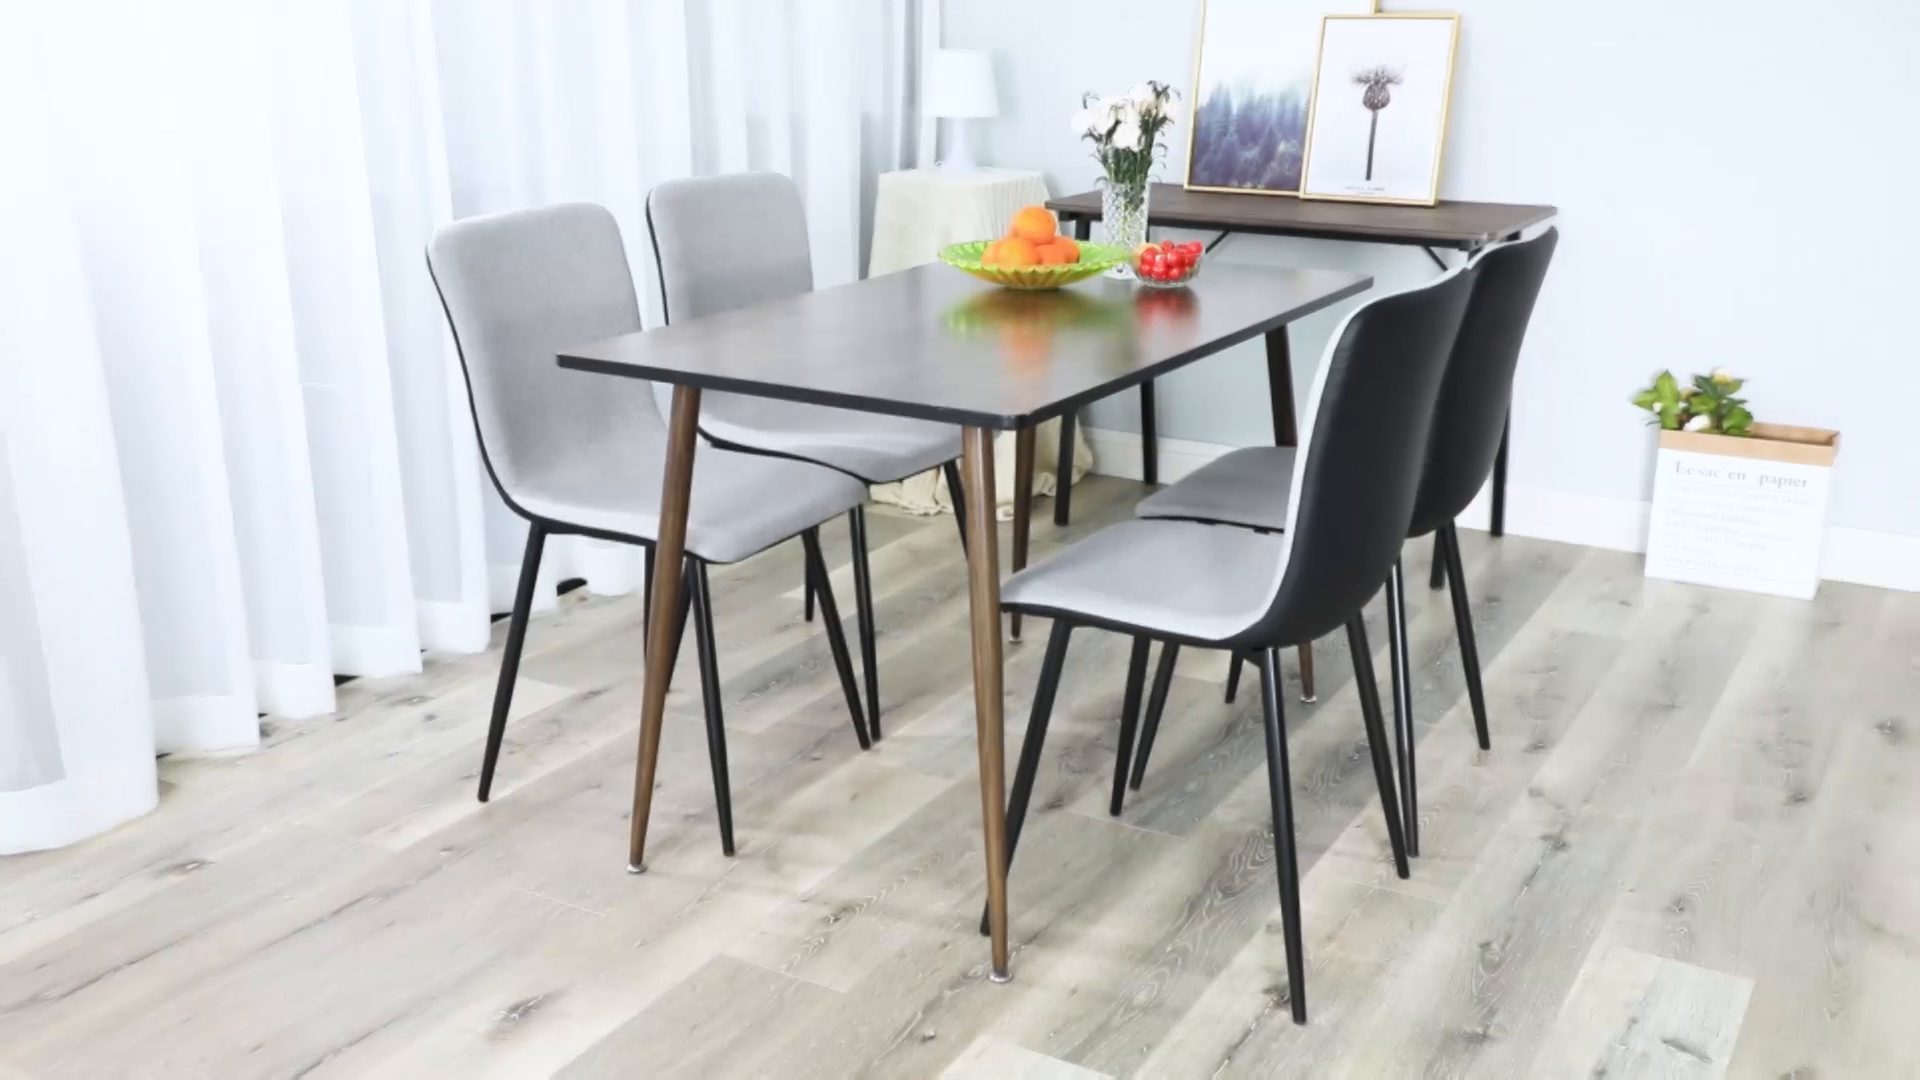 Coavas Dining Chairs Set of 4, Kitchen Chairs with with Fabric Cushion Seat Back, Black Washable PU Back and Metal Legs, Modern Mid Century Living Room Side Chairs - Best Christmas Gifts for Family and Friends. Epic Deals for Black Friday and Cyber Monday! WASHABLE PU FAUX LEATHER🍅🍅🍅---The back of the ergonomic seat shells is made of washable PU faux leather, dyed in stunning and elegant matte black. PU is waterproof and washable. Set of 4 dining room chairs -COMFORTABLE & BREATHABLE - Wear proof thicken padding upholstered chair seat and back, Each bottom leg is equipped with an anti-scratches and anti-noise rubber pad to protect your floor. Set of 4 dining room chairs - STURDINESS & DURABILITY - 4 metal tube with wooden transfer legs, or paint it in a color you prefer. Sturdy X-shaped support to the seat, strong bearing strength, Maximum weight capacity: 250 lbs. - kitchen-dining-room-furniture, kitchen-dining-room, kitchen-dining-room-chairs - A1qE%2B0ElmsL -